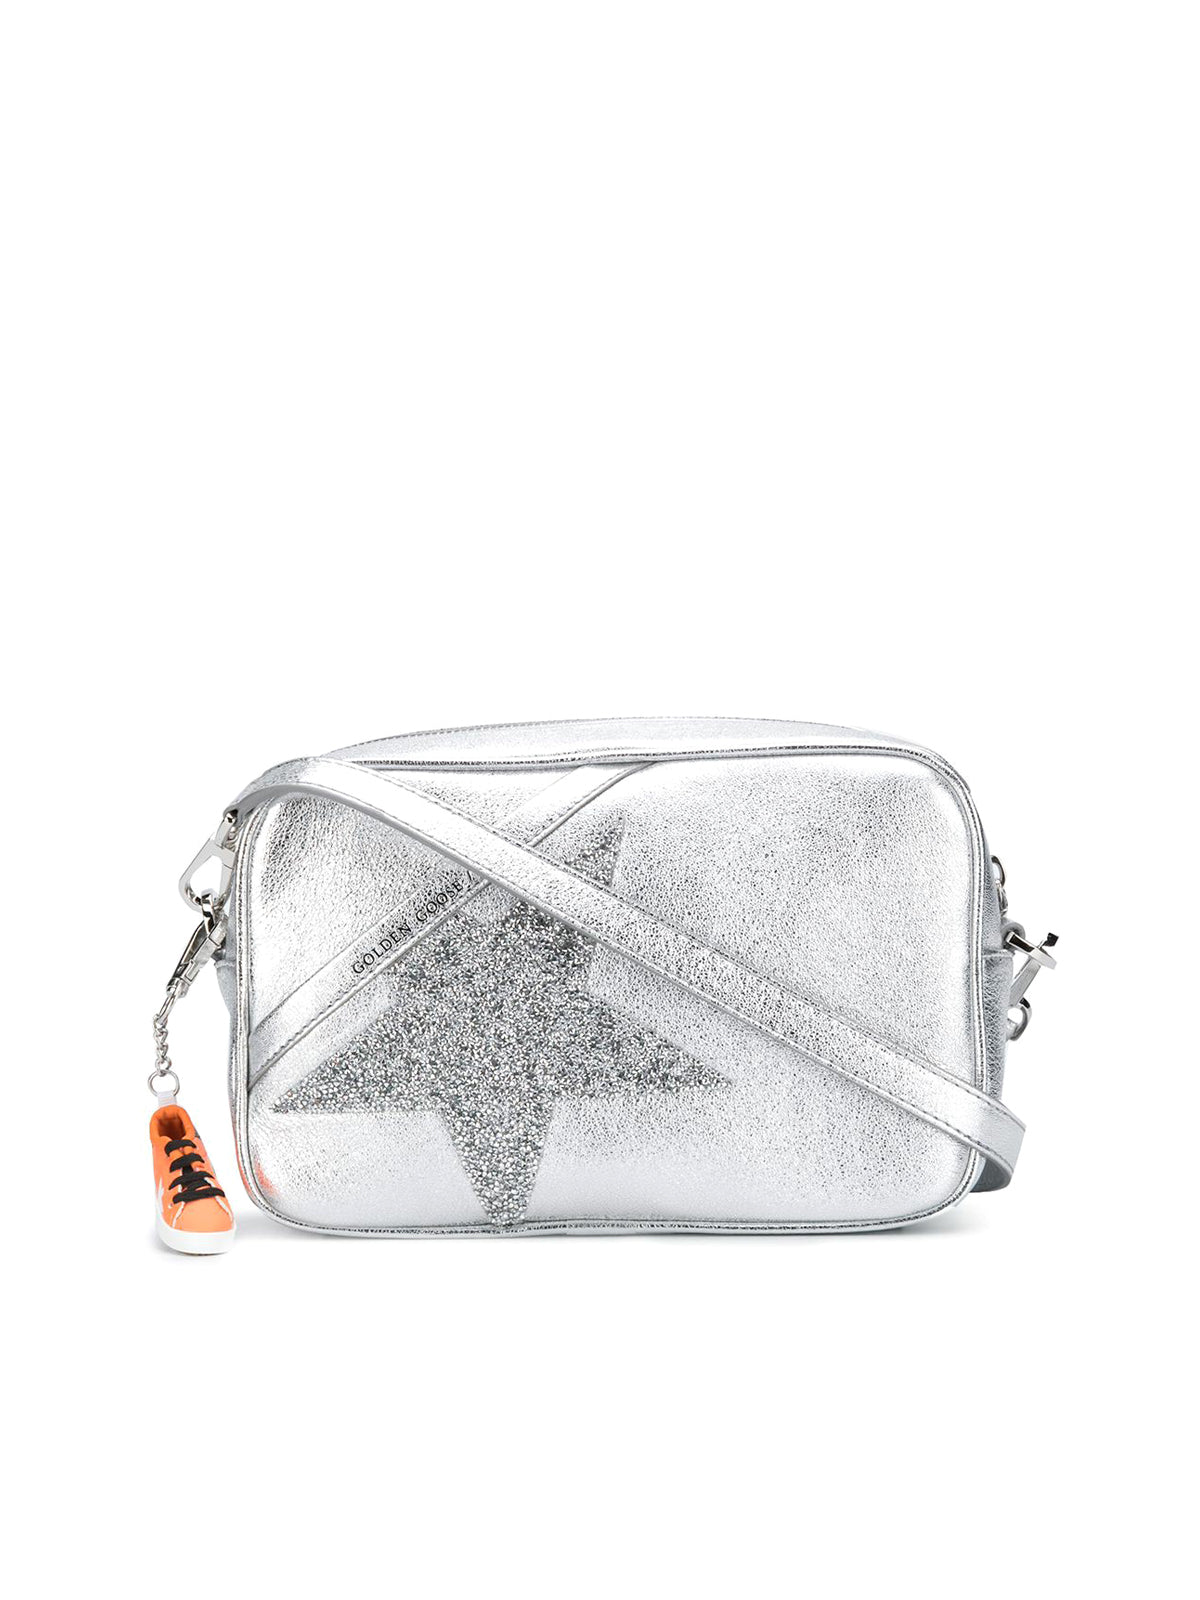 Crossbody star bag